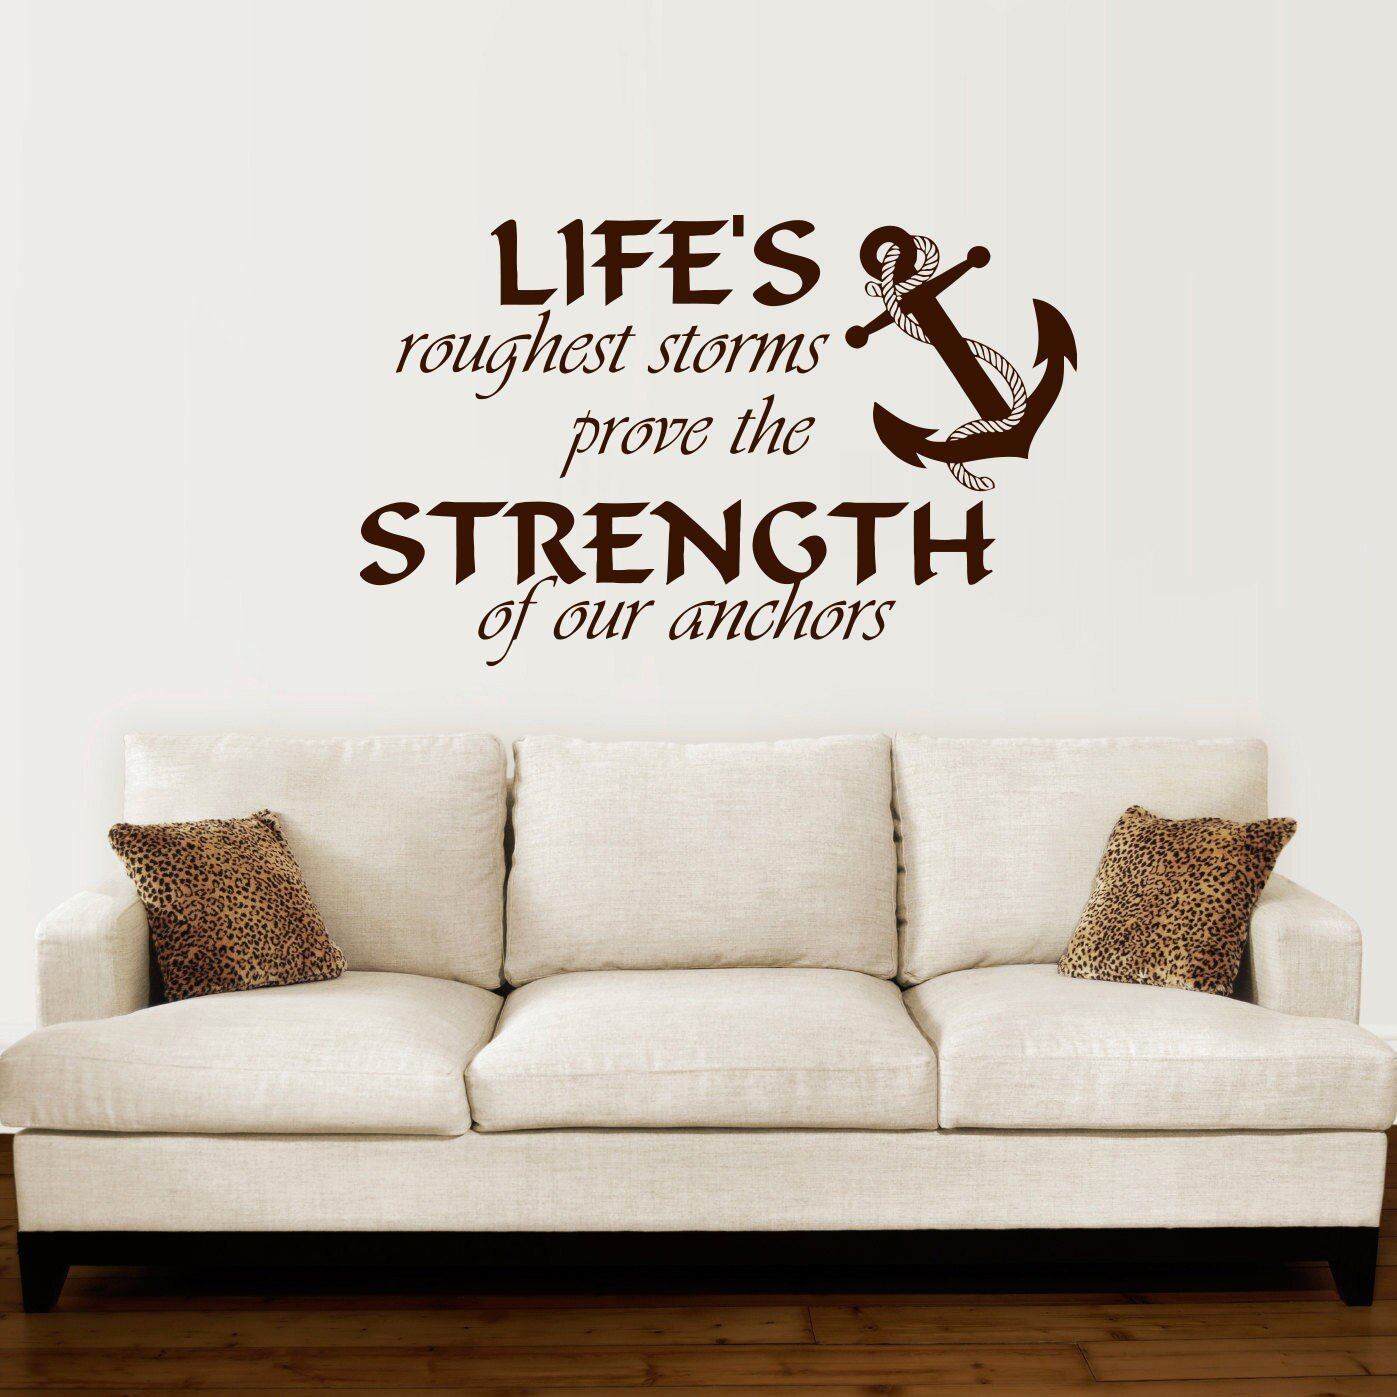 Best Anchor Wall Decal Quotes Nautical Sayings Wall Vinyl Sticker Bedroom Decor Diy Self Adhesive With Pictures